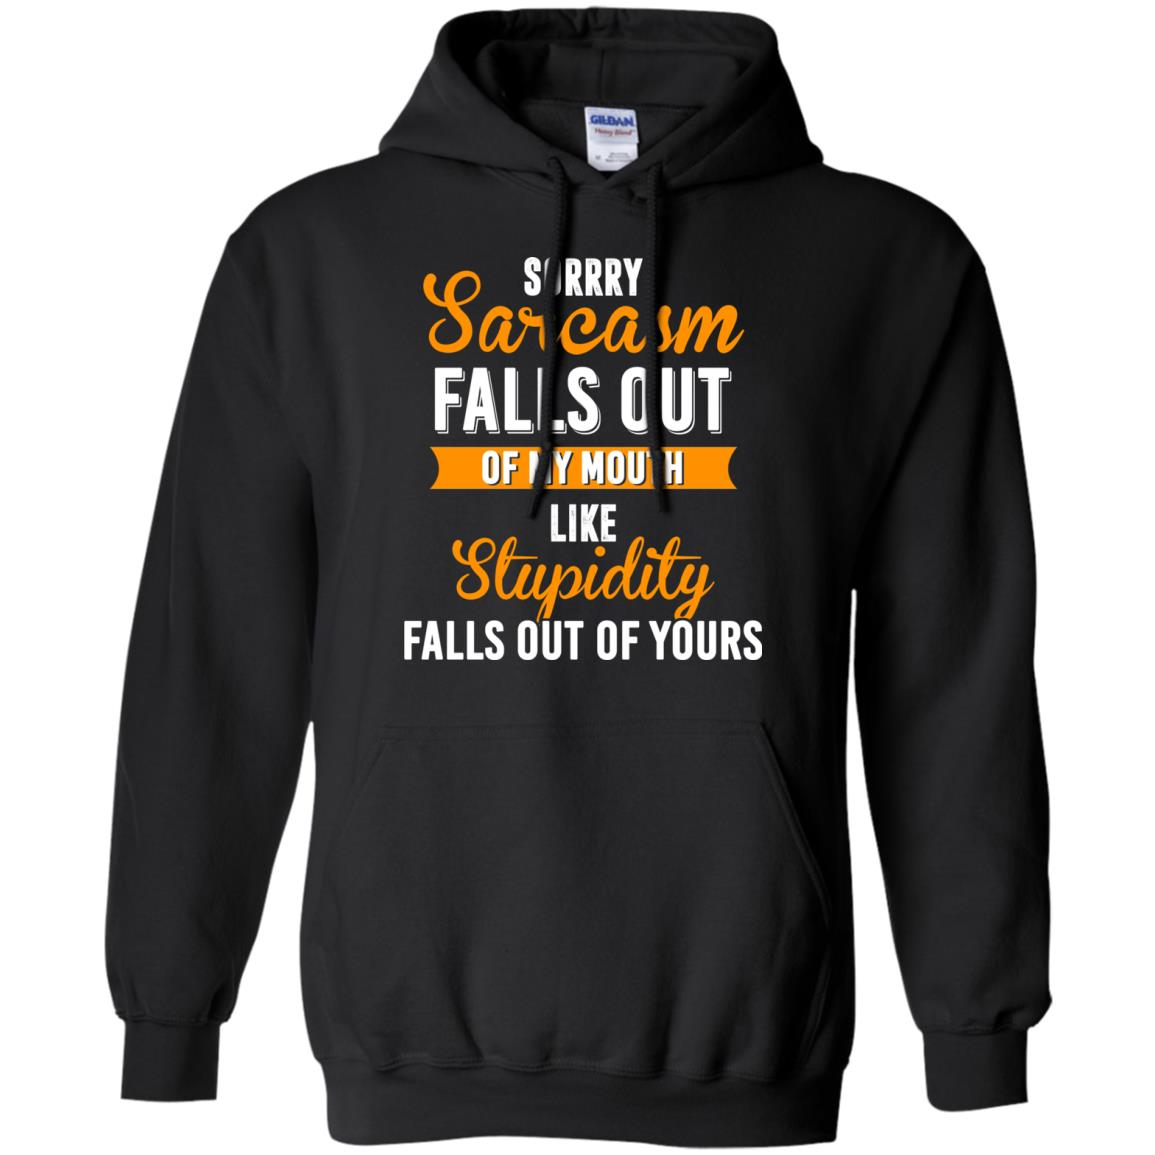 image 518px Sorry, Sarcasm Falls Out of my Mouth Like Stupidity Falls Out Of Yours Shirt, Tank